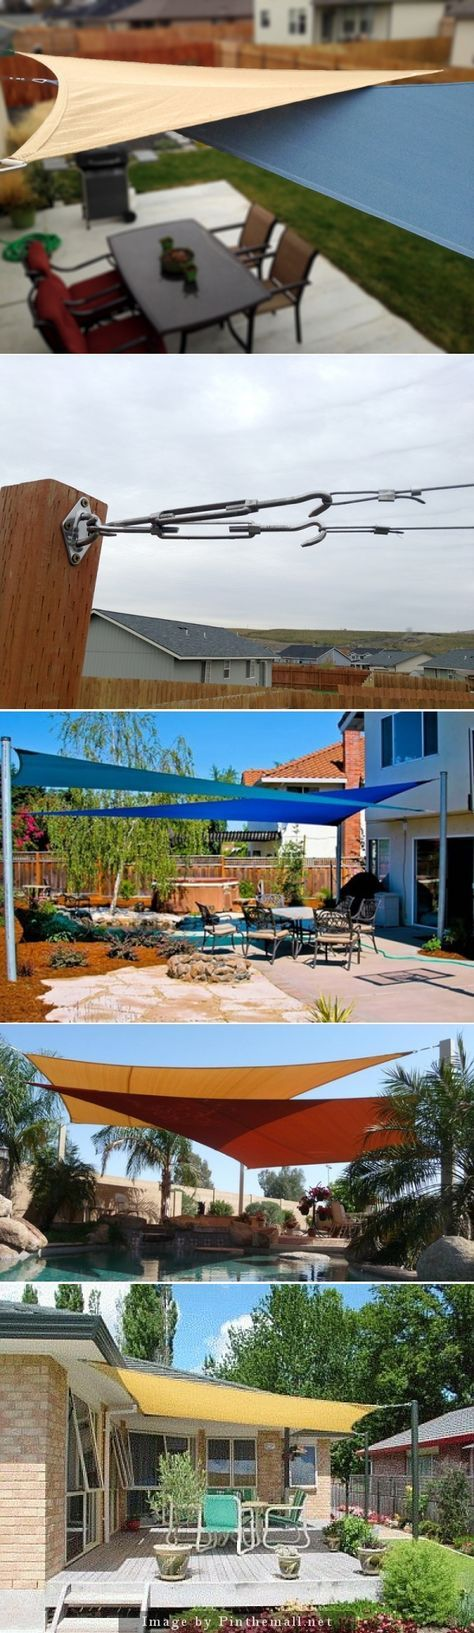 Shade Sails for your outdoor living areas @Kitty Terrell , this is what you need for by the pool!